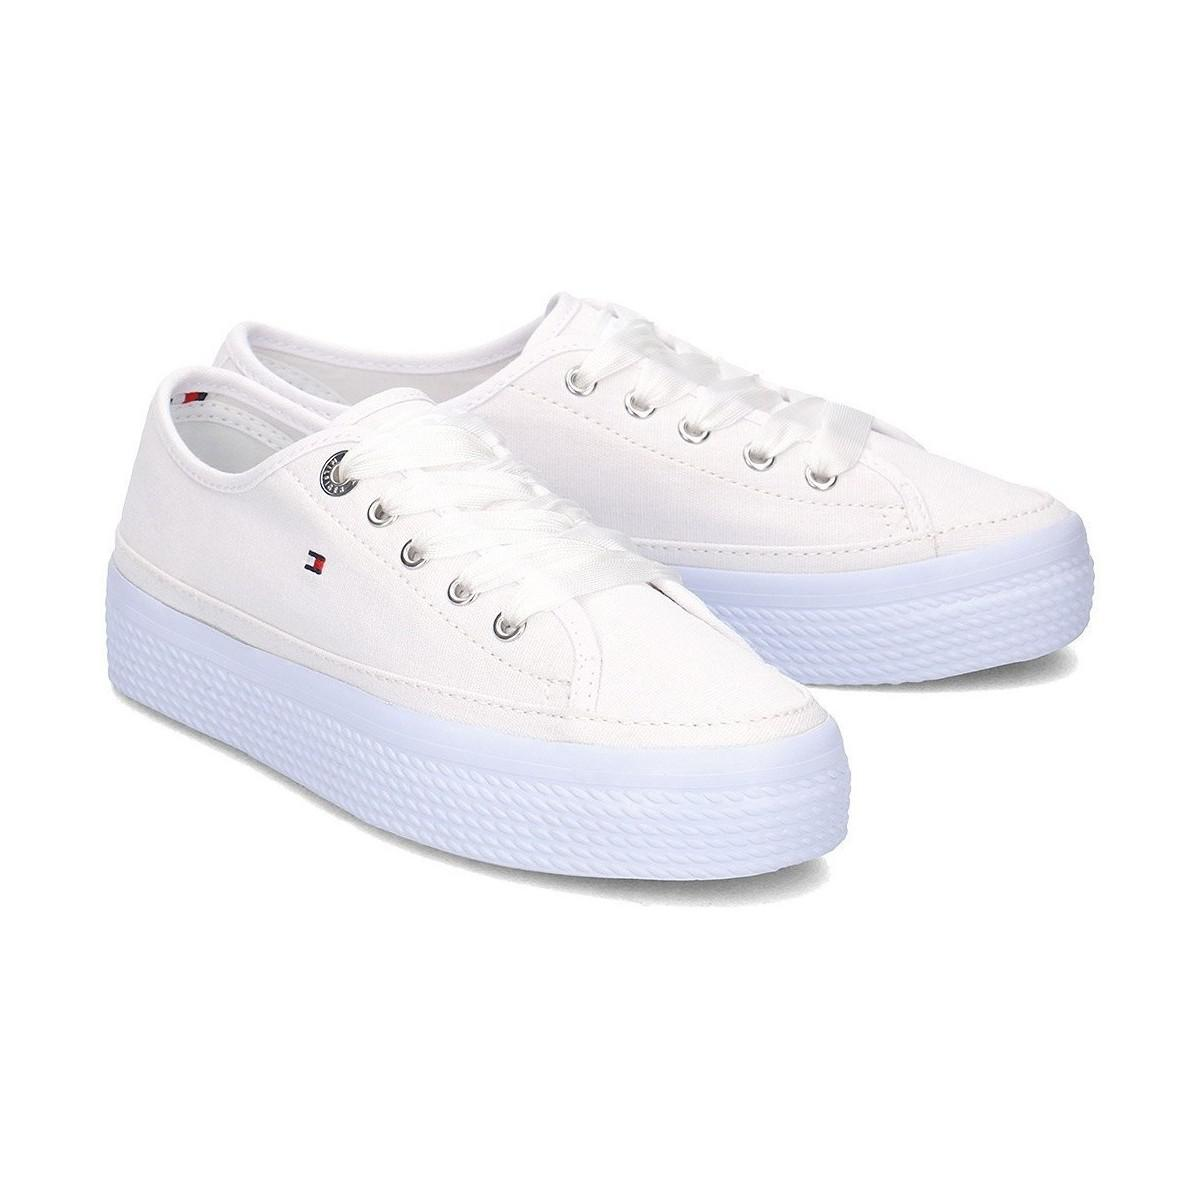 ba8d162c56d77d Tommy Hilfiger Fw0fw02994425 Women s Shoes (trainers) In White in ...